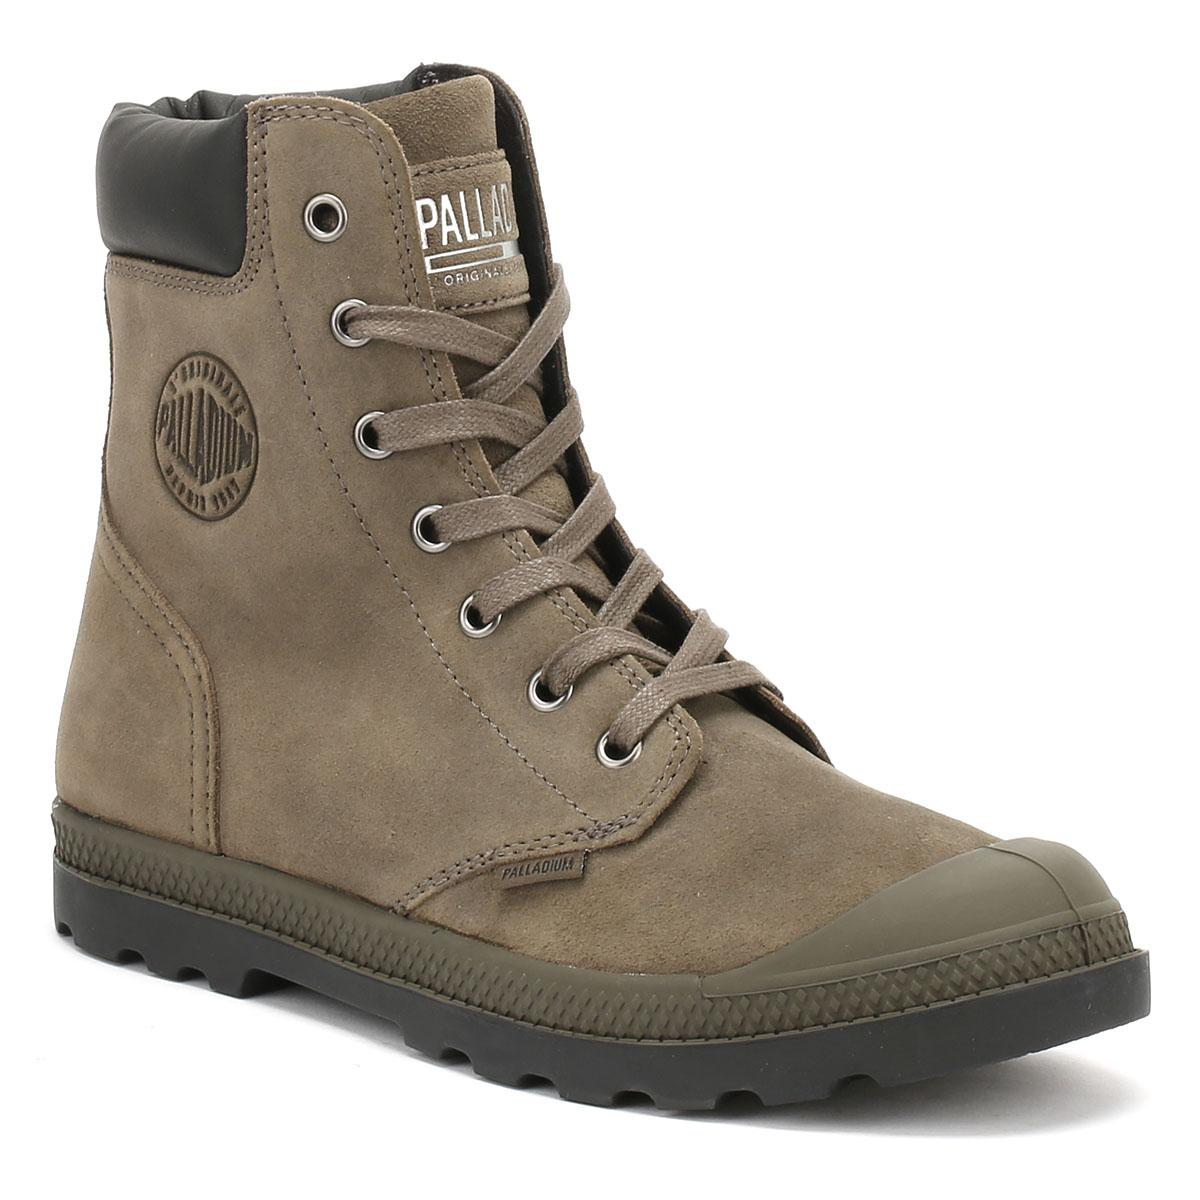 New Palladium Pallabosse Off Lea Brown Ankle Boots for Women Sale